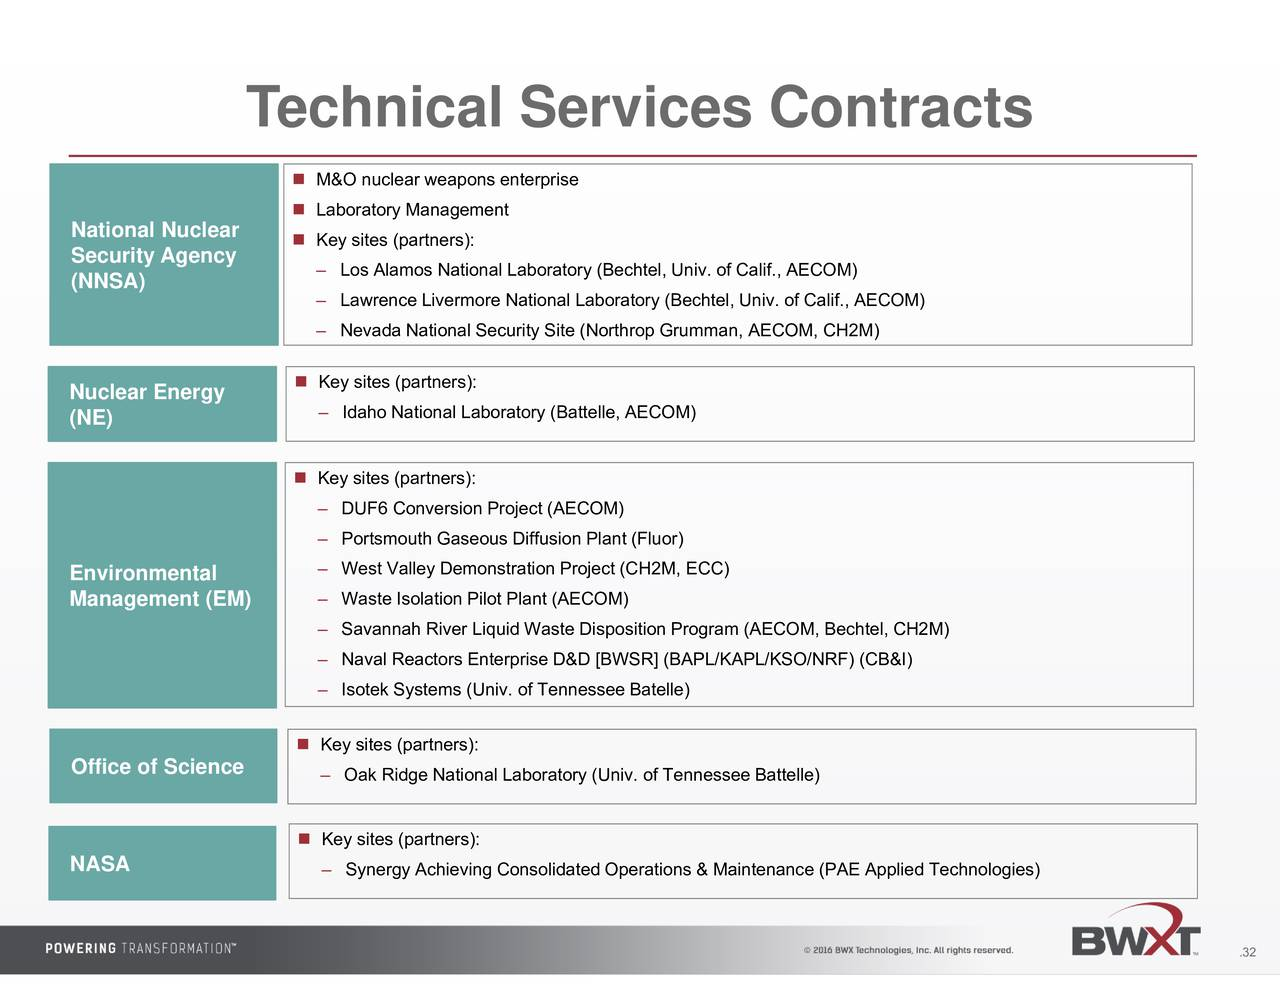 Bwx Technologies Inc 2016 Q3 Results Earnings Call Slides